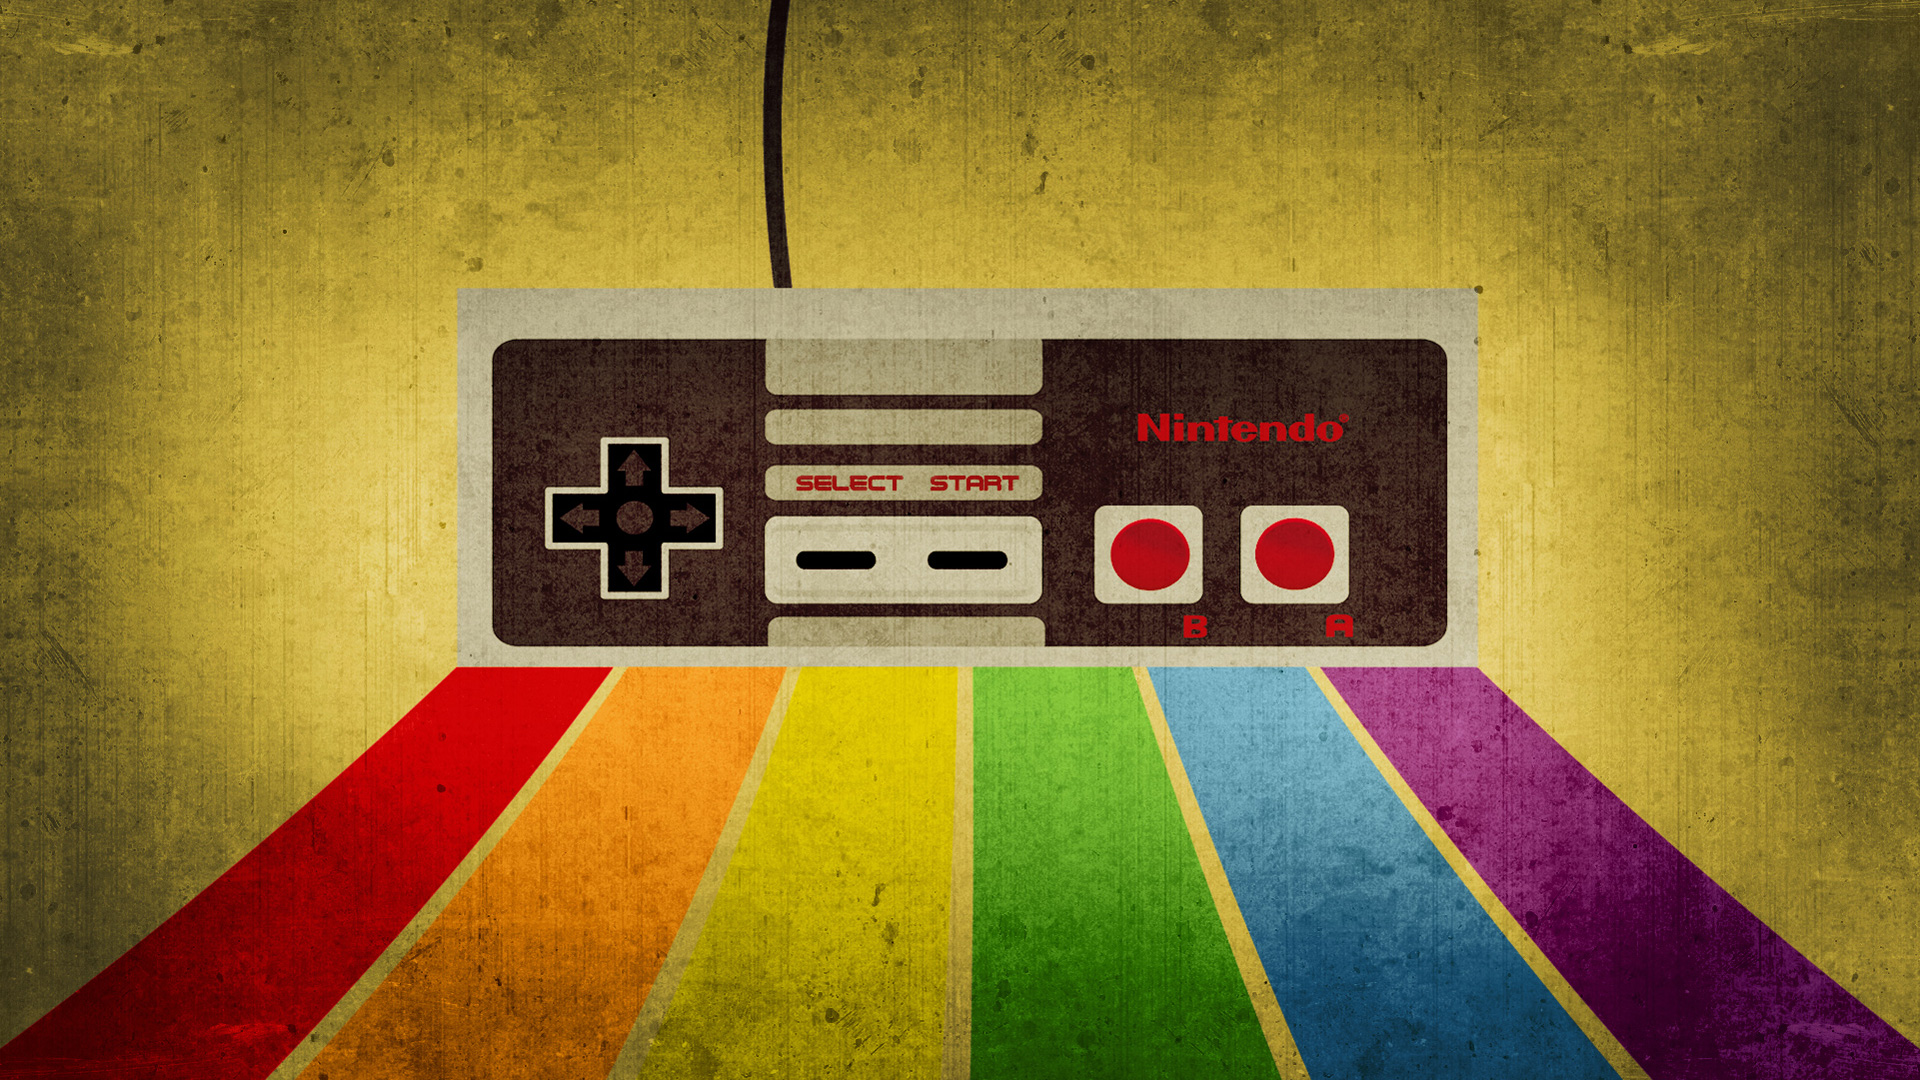 48 Hd Retro Gaming Wallpapers On Wallpapersafari